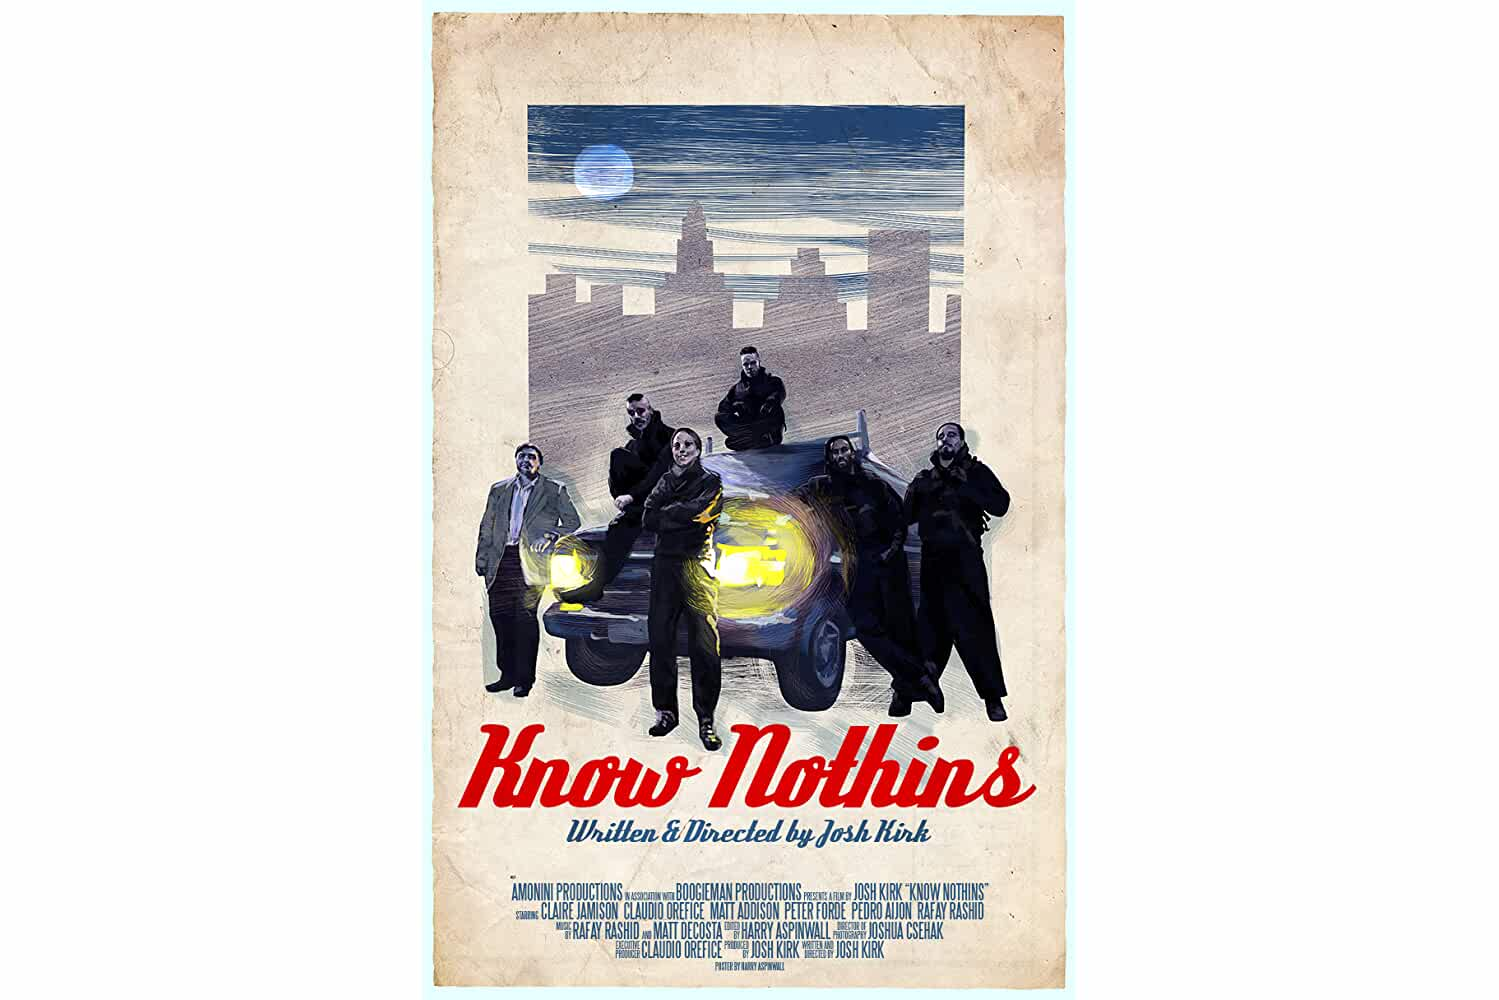 Know Nothins (2018)